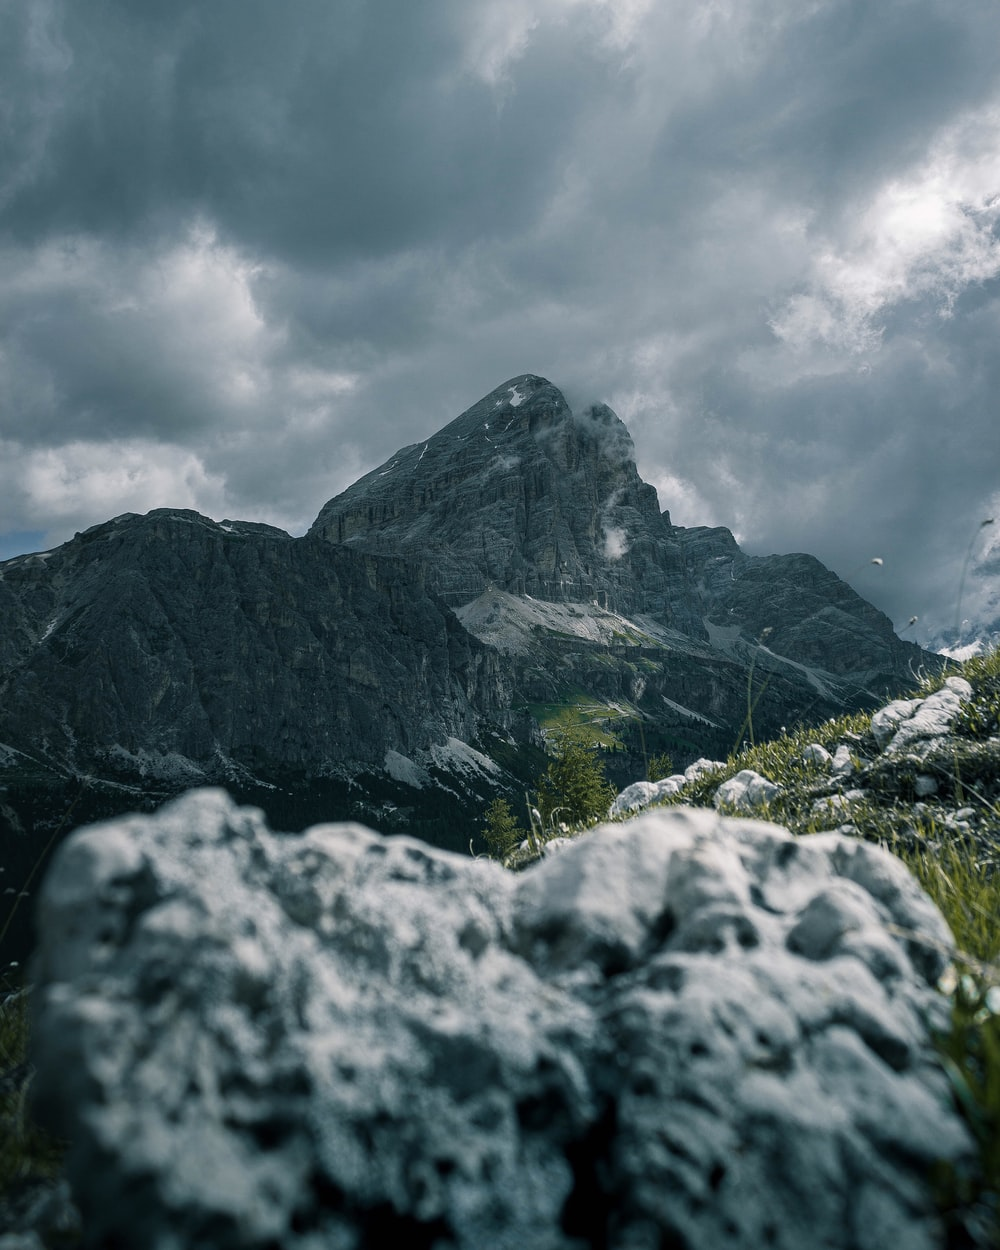 gray rocky mountain under white cloudy sky during daytime